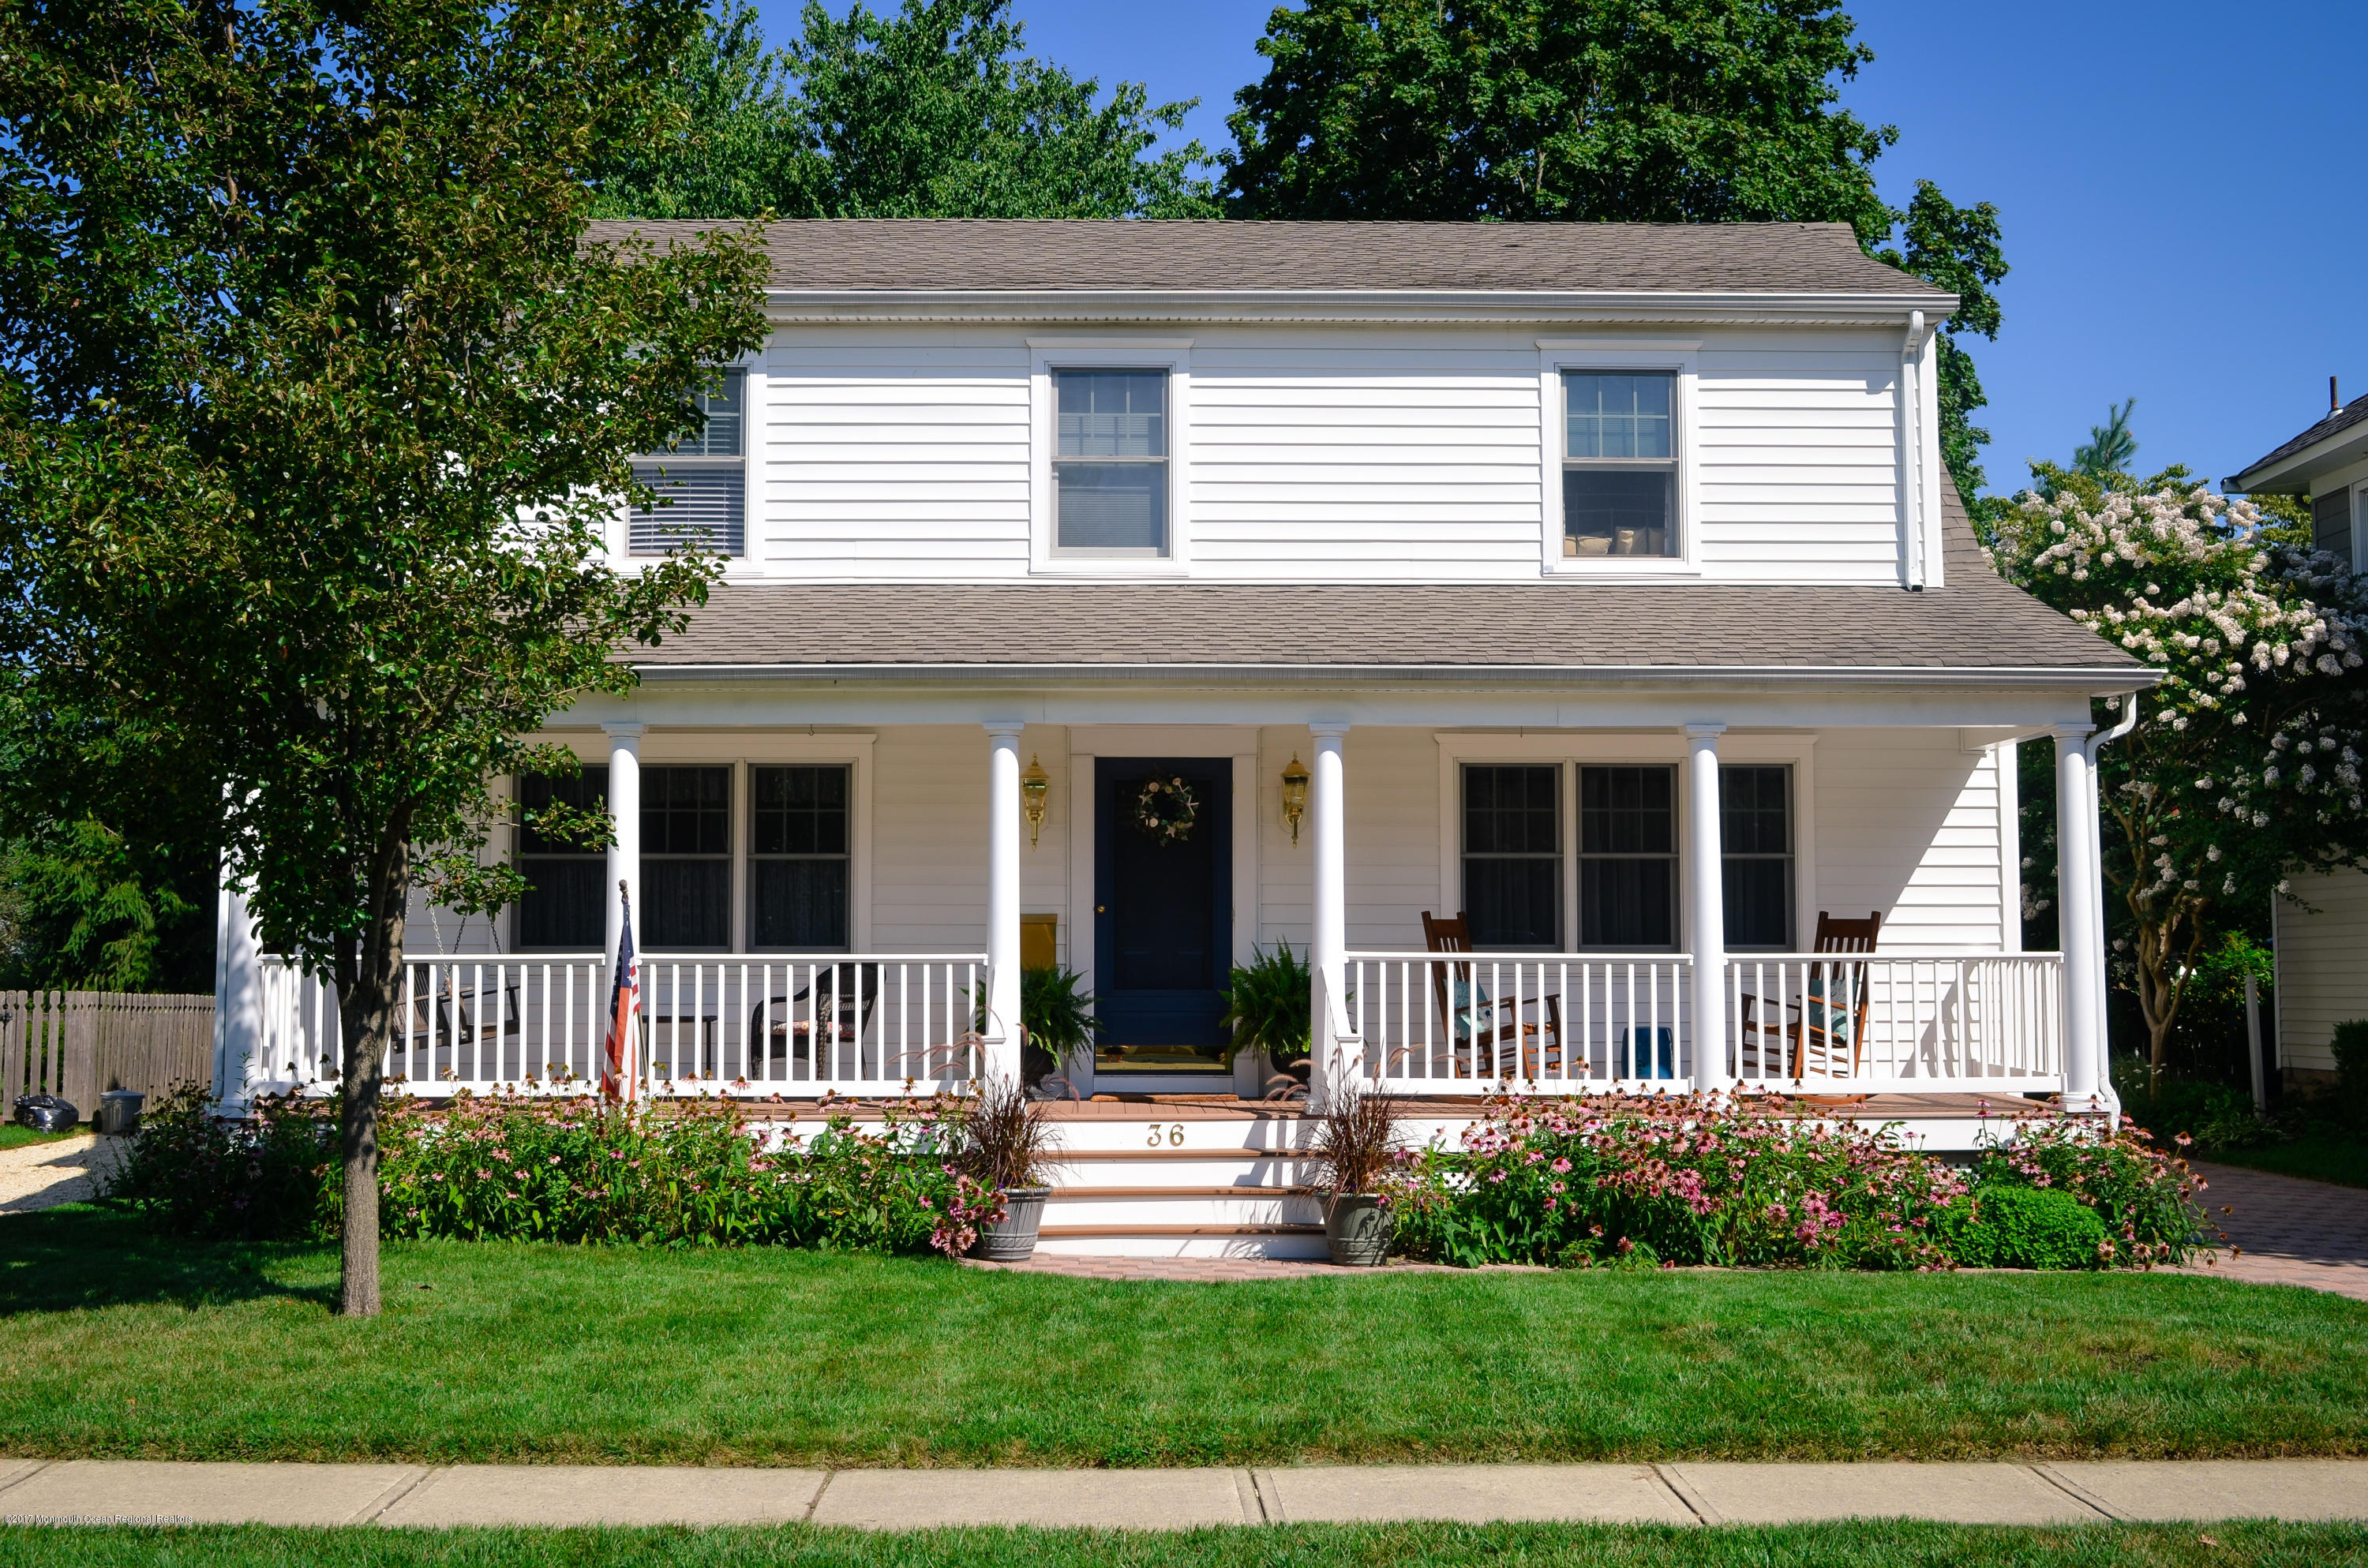 36 FOSTER STREET, RED BANK, NJ 07701